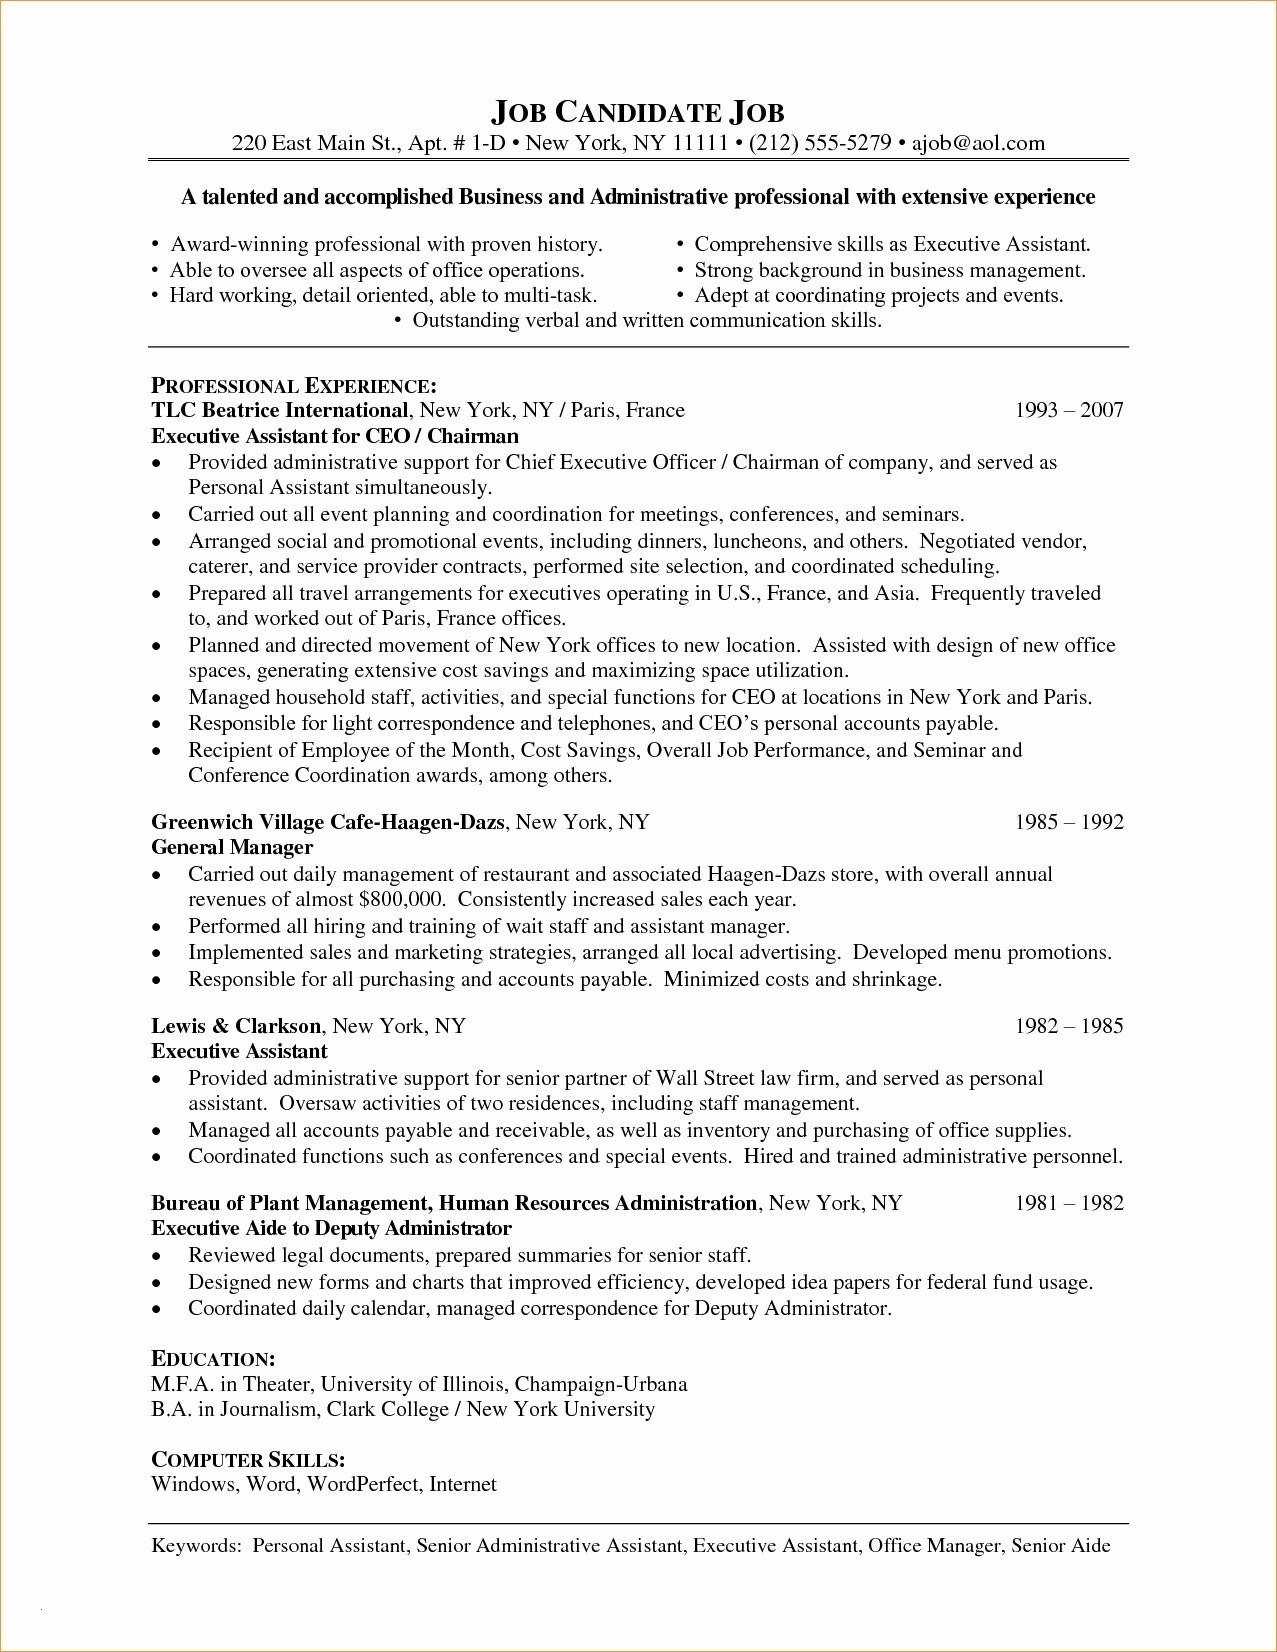 Office Manager Description for Resume - 21 Dental Fice Manager Resume